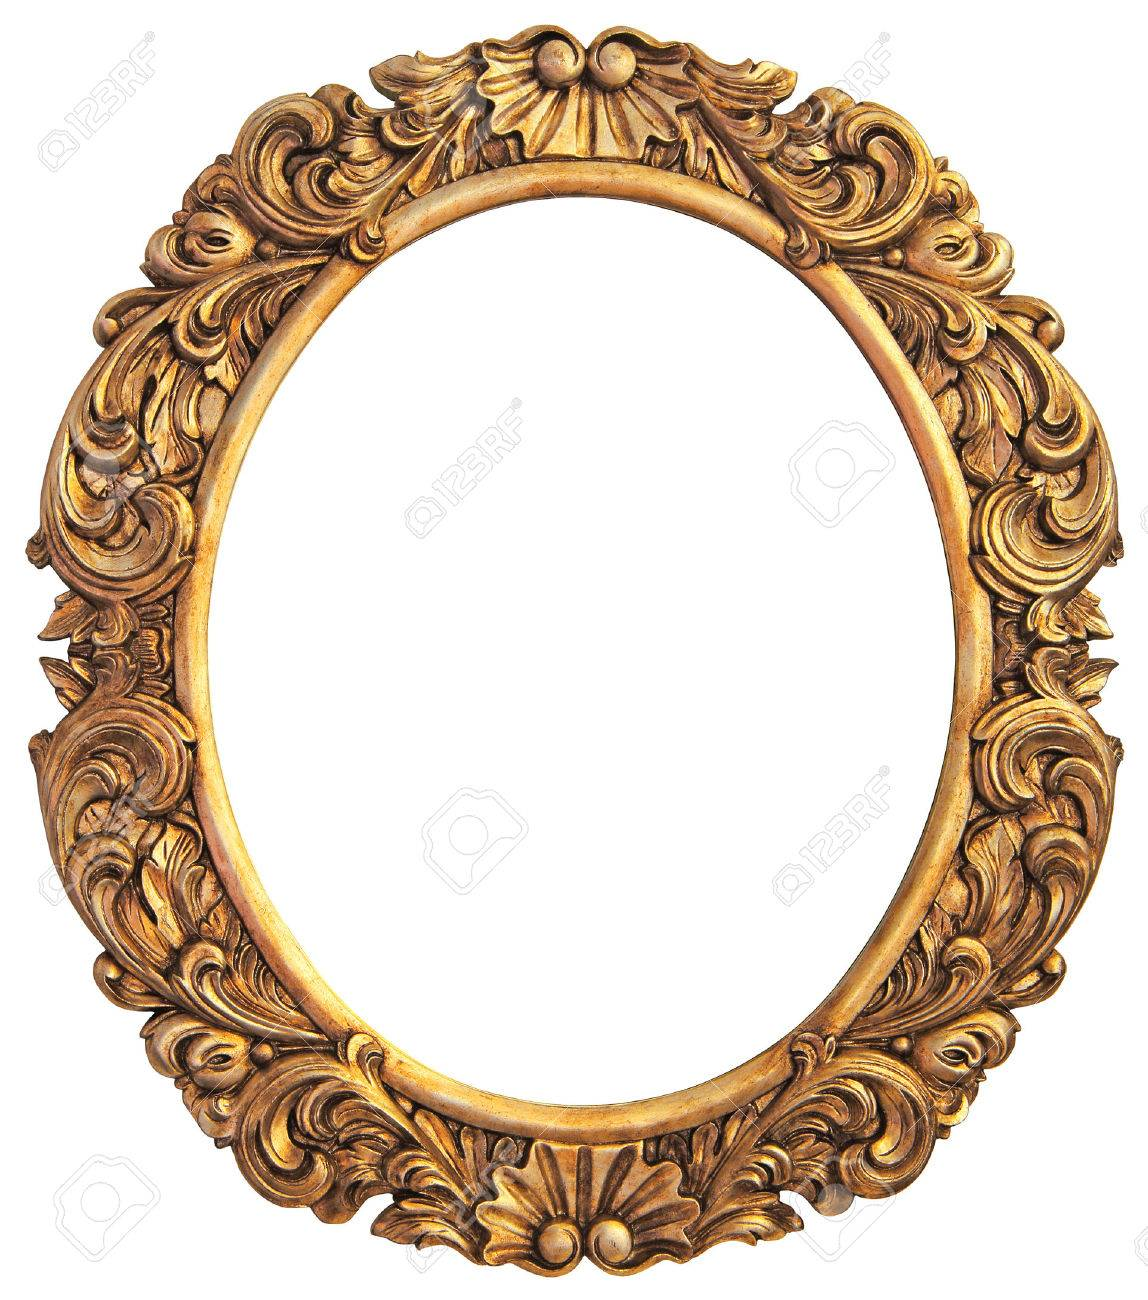 Antique gilded frame isolated stock photo picture and royalty antique gilded frame isolated stock photo 23333295 jeuxipadfo Images